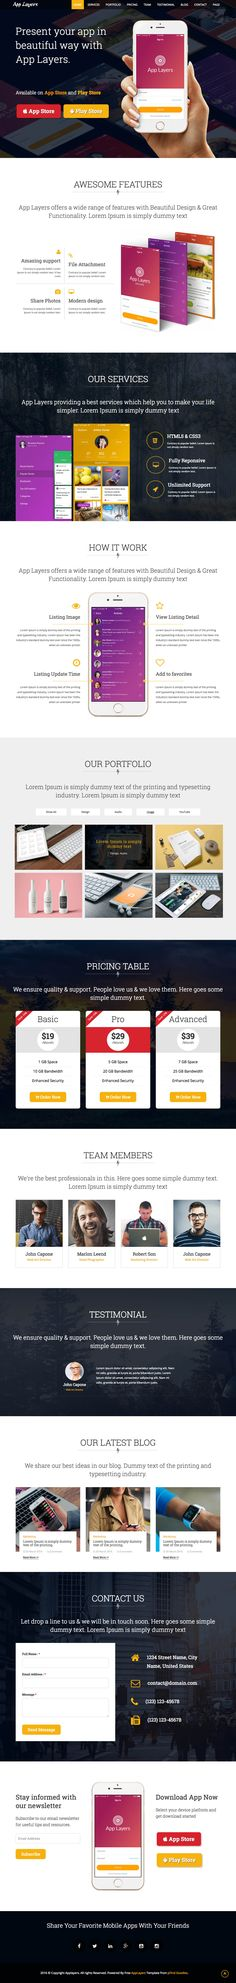 "AppLayers is a free One Page HTML template built to showcase your new app. The template features a fixed header navigation that ""smooth scrolls"" to the relevant website sections."